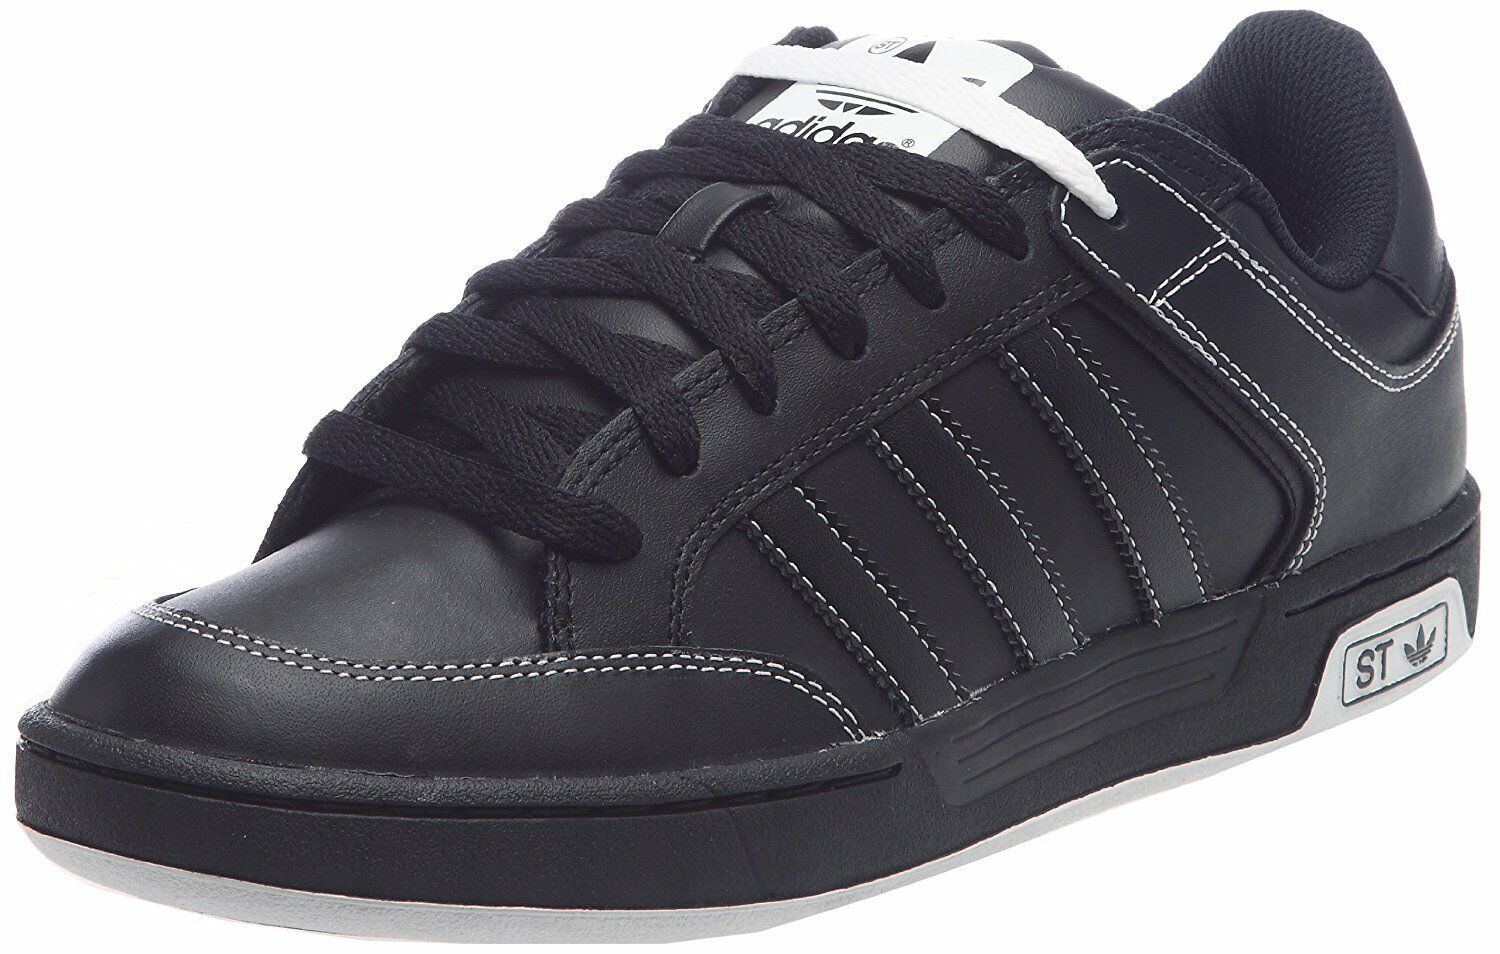 the best attitude d3afa 932aa Adidas Varial ST Black Mens Boys Casual Low Lace Up Fashion Trainers Shoes  UK4.5